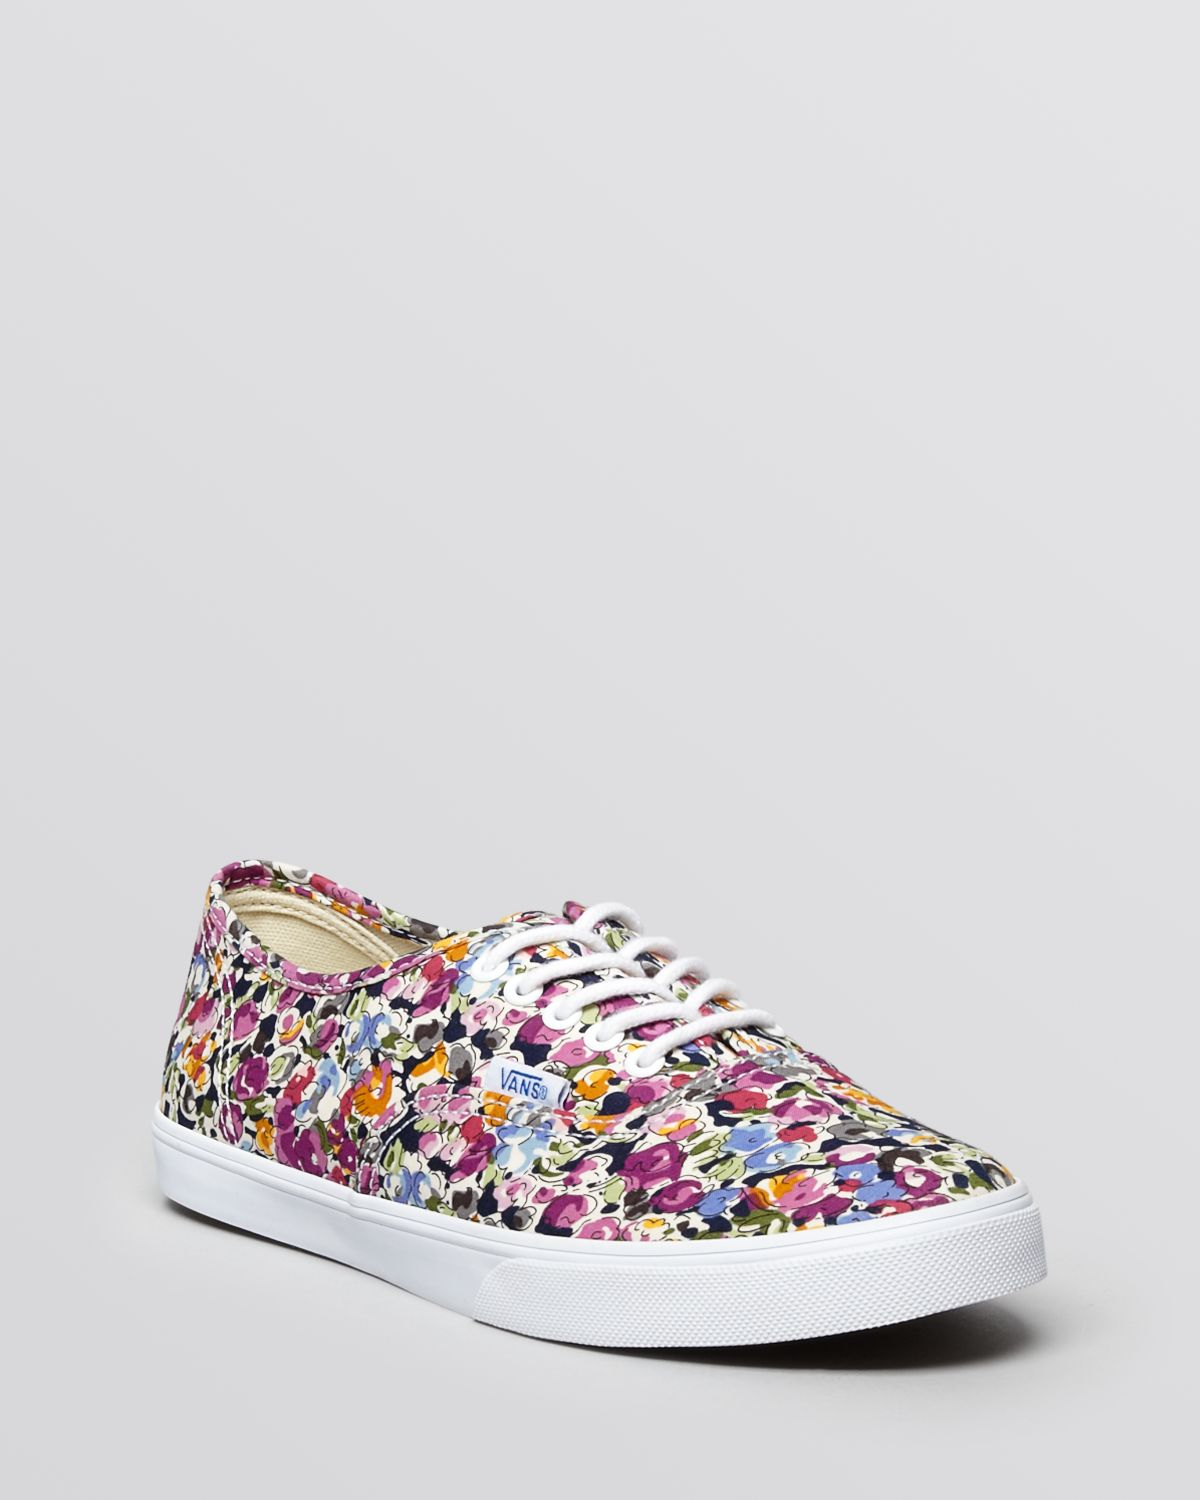 Lyst - Vans Lace Up Flat Sneakers Authentic Lo Pro Floral fd3d92547103